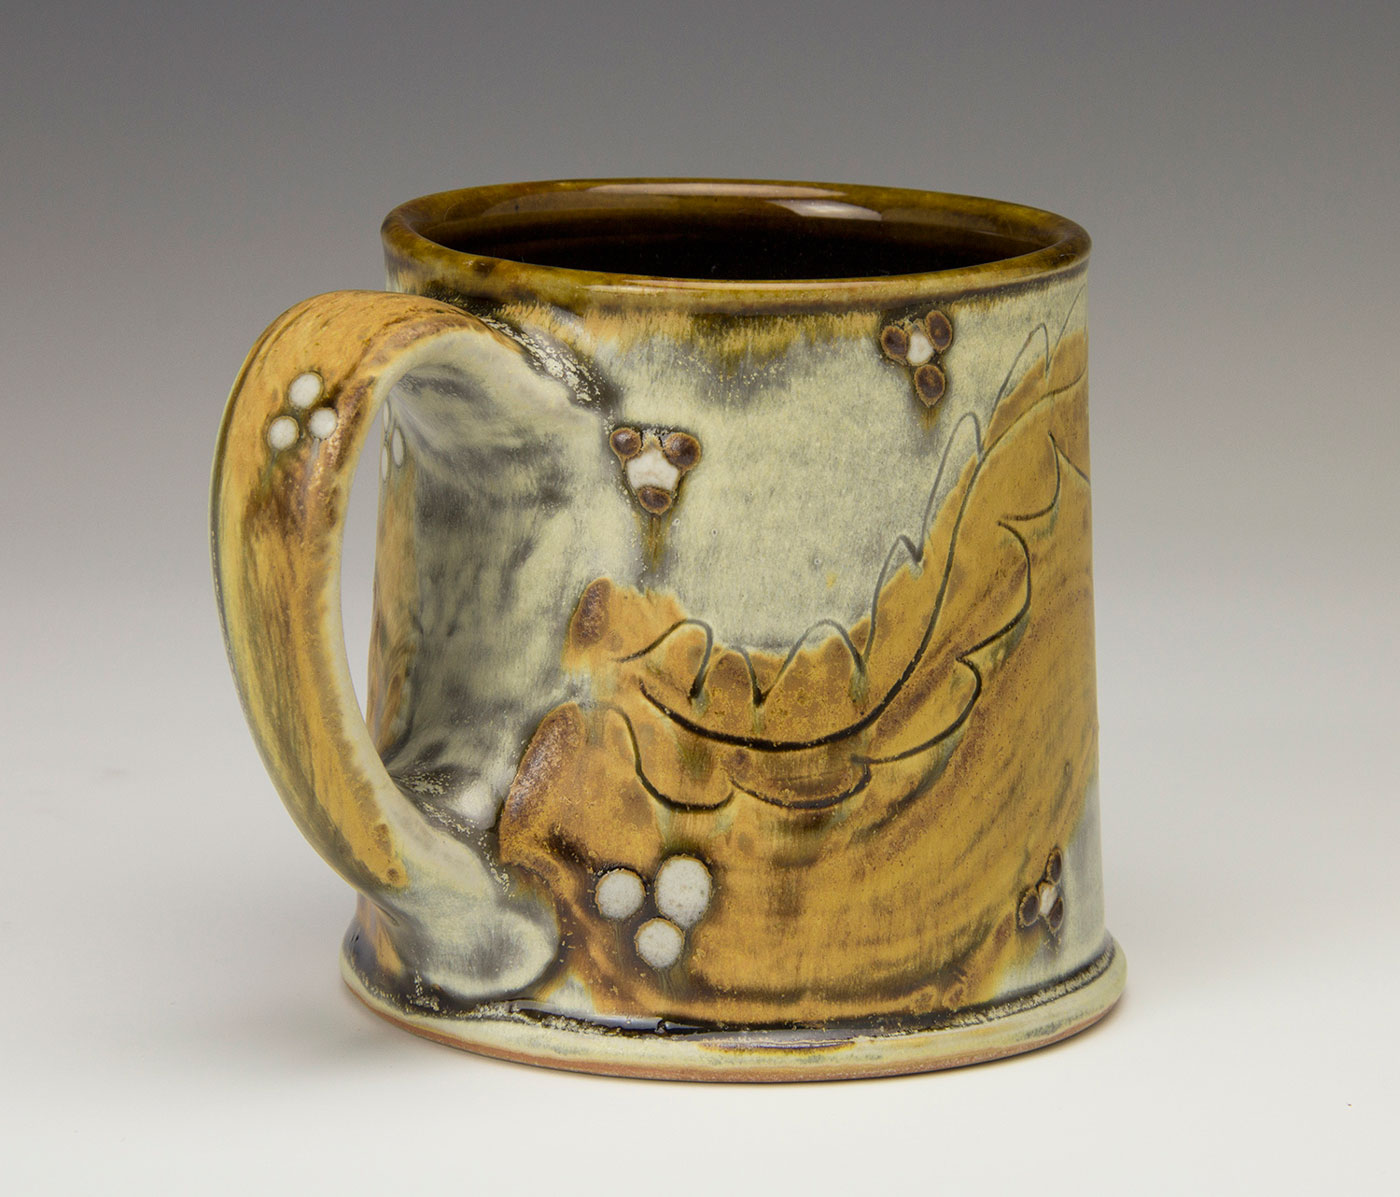 Mug-Studio-Pottery-Samantha-Henneke-Seagrove-North-Carolina.jpg